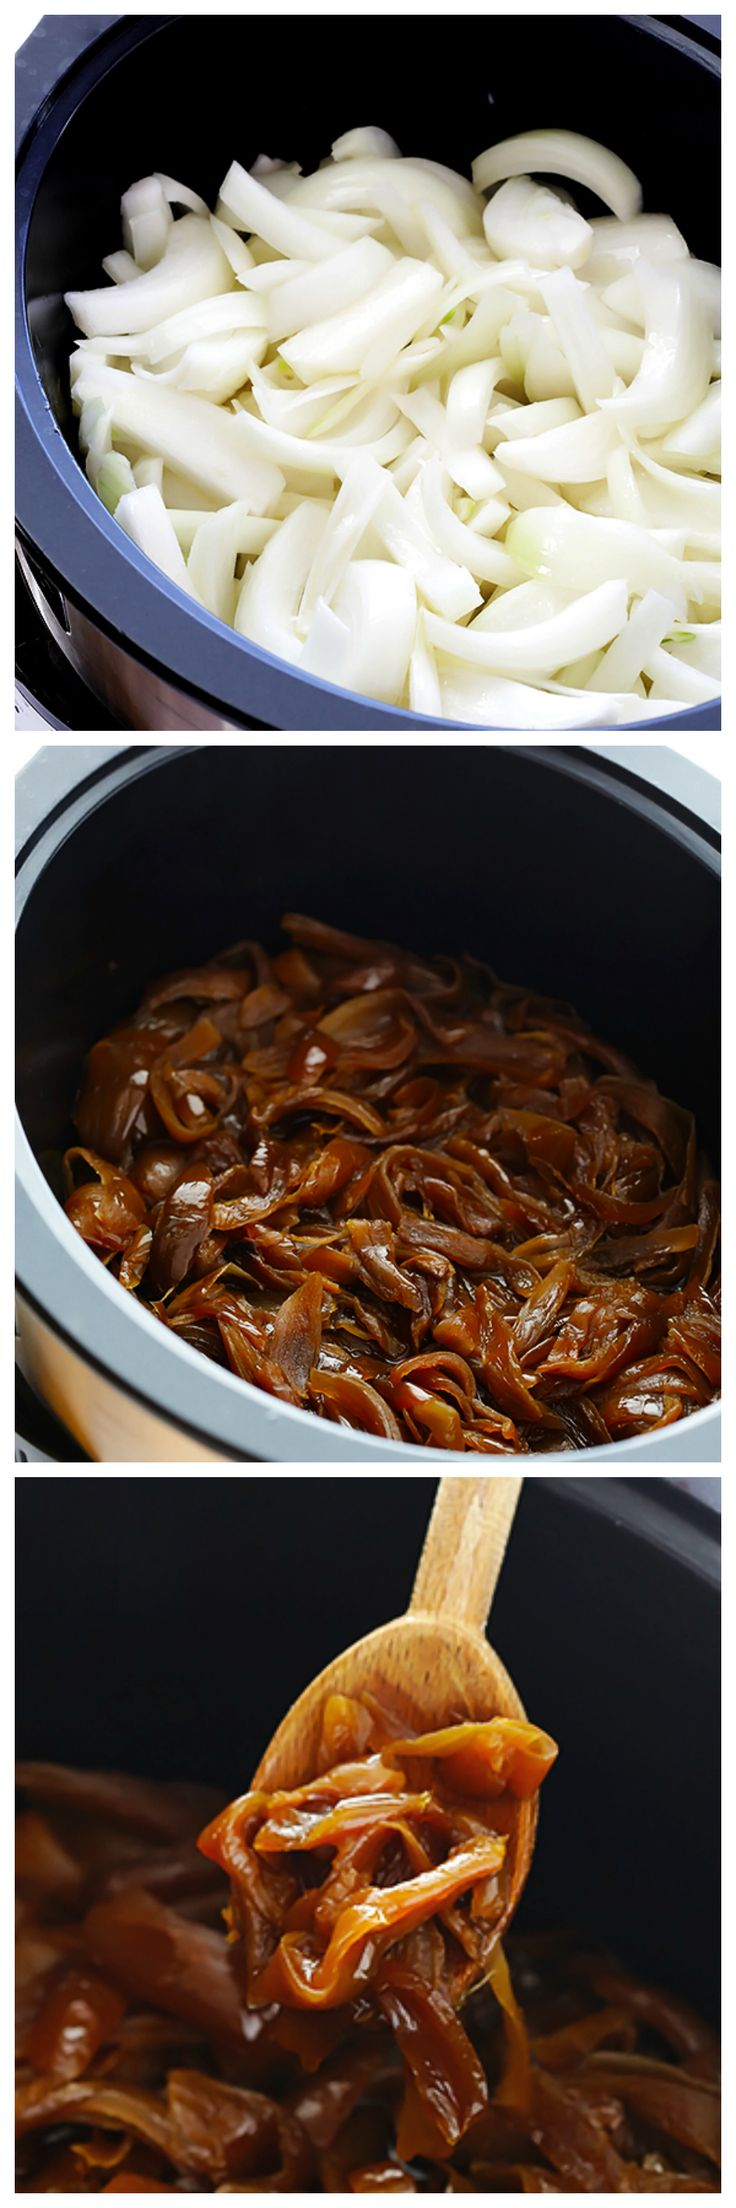 All you need are 2 ingredients to make delicious caramelized onions in the slow cooker! | gimmesomeoven.com